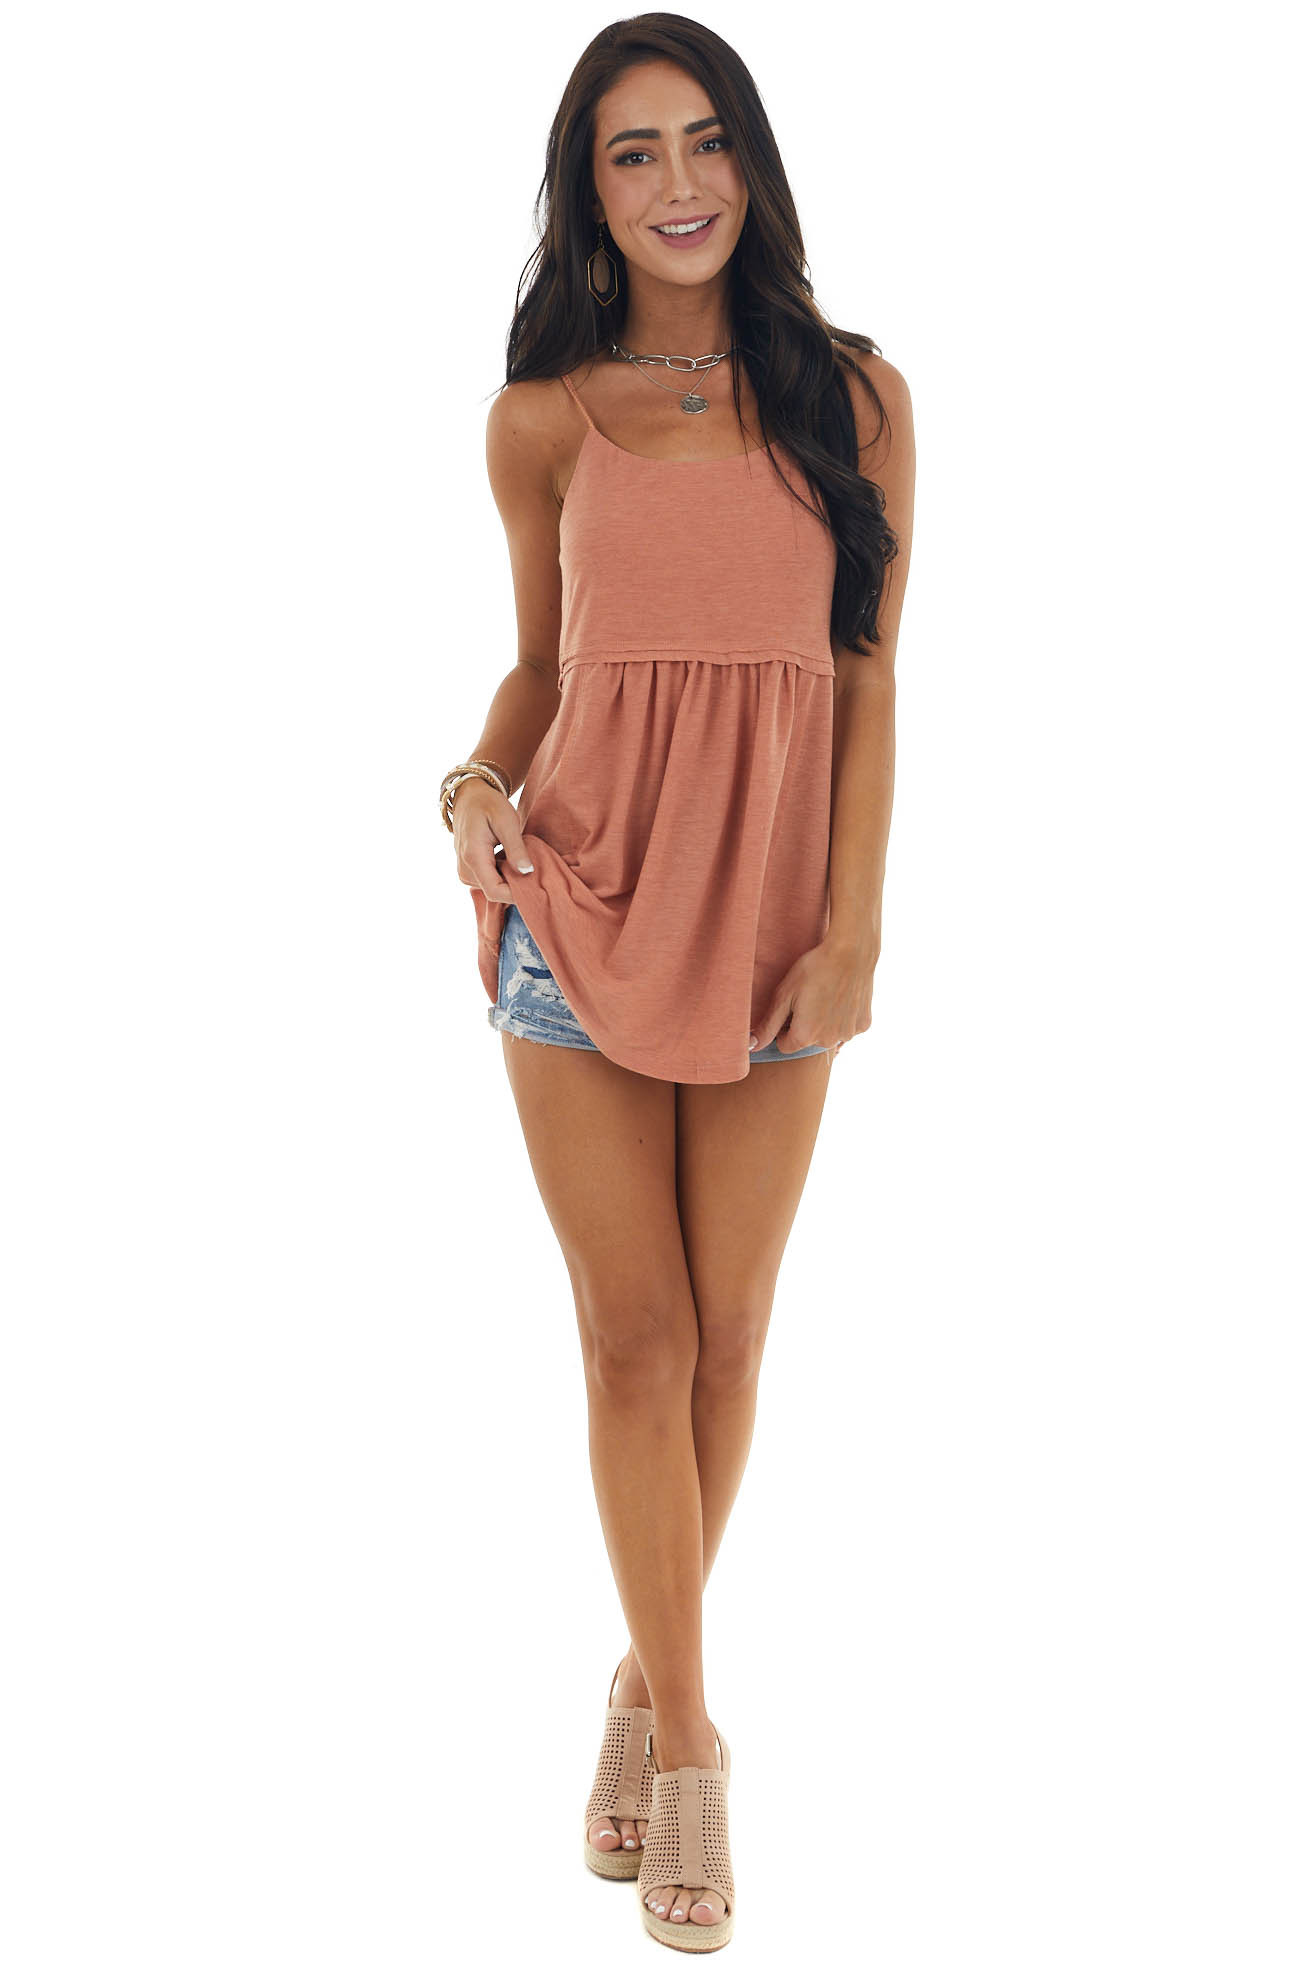 Pale Ginger Sleeveless Babydoll Top